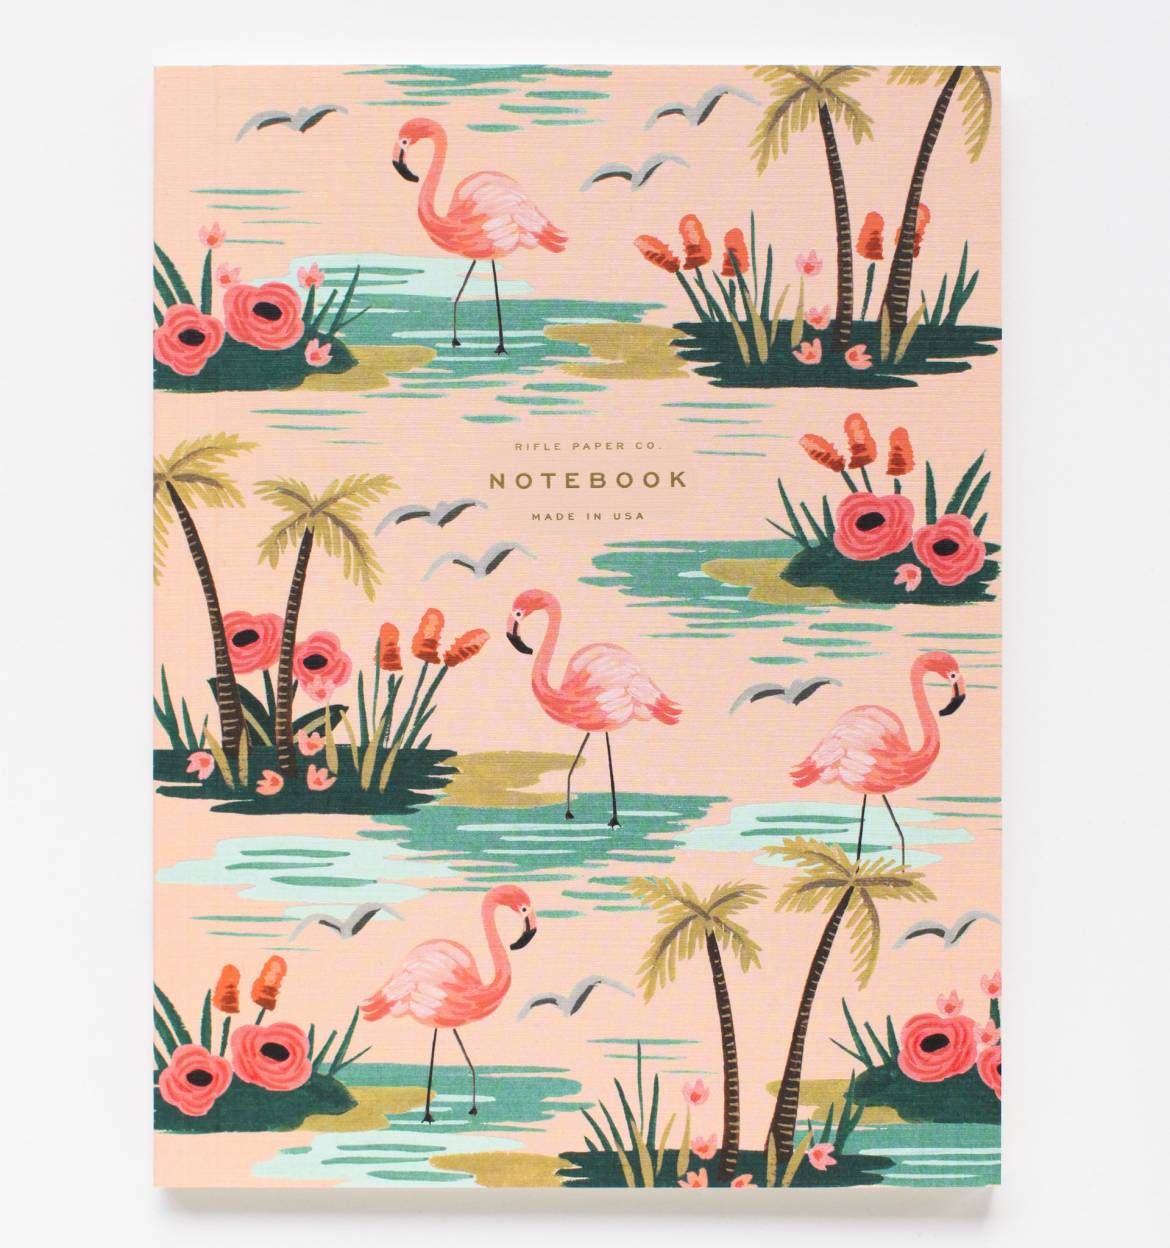 Rifle Paper Co Notebook  via